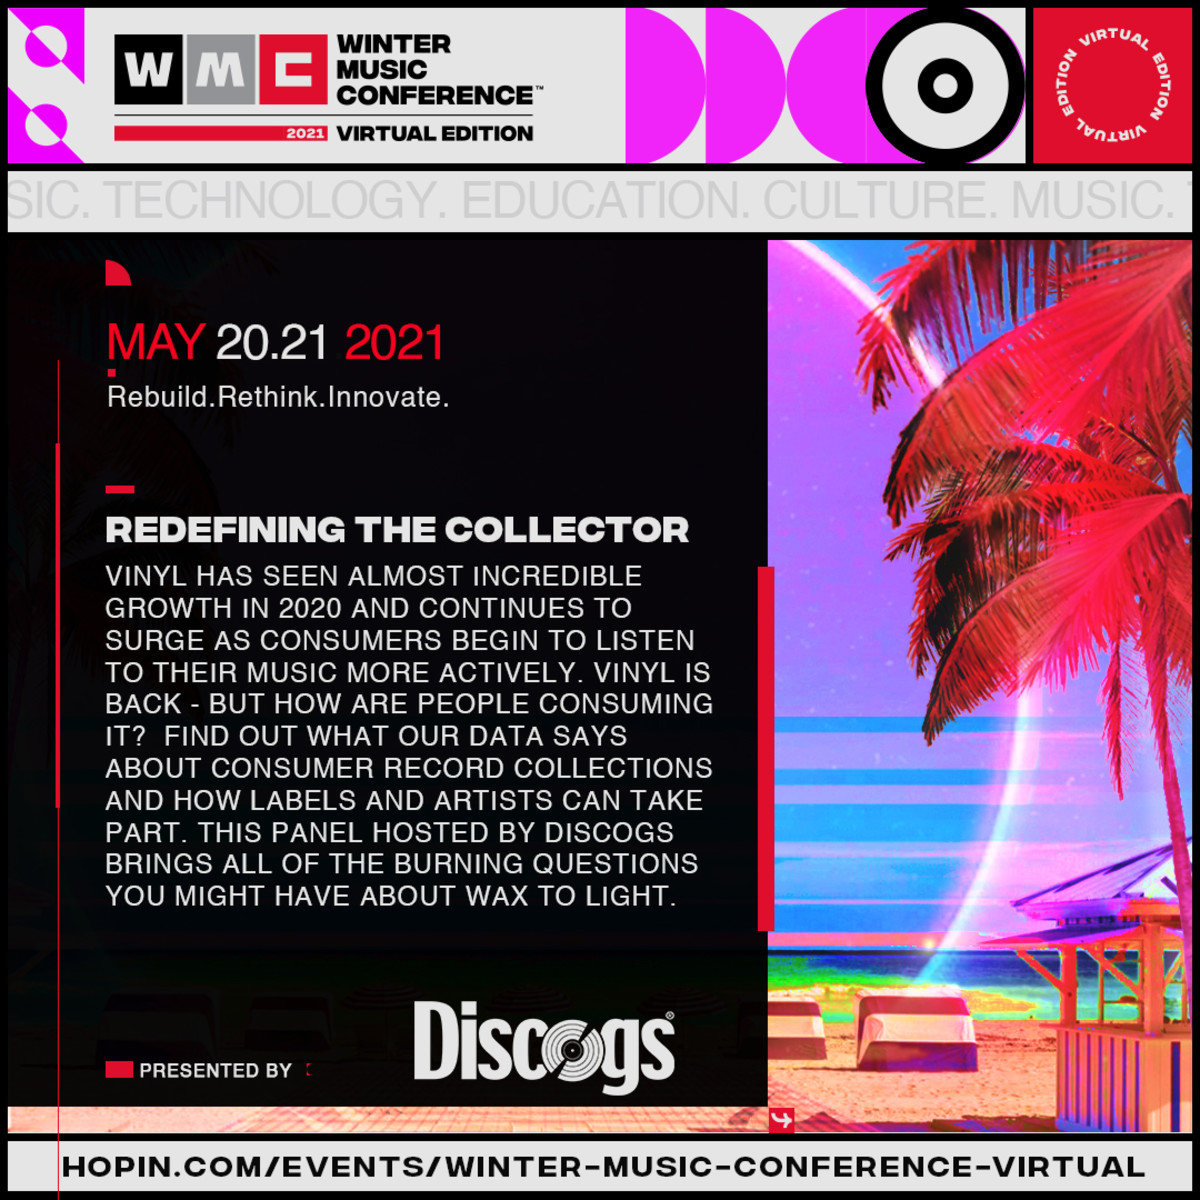 Redefining the Collector - Presented by Discogs